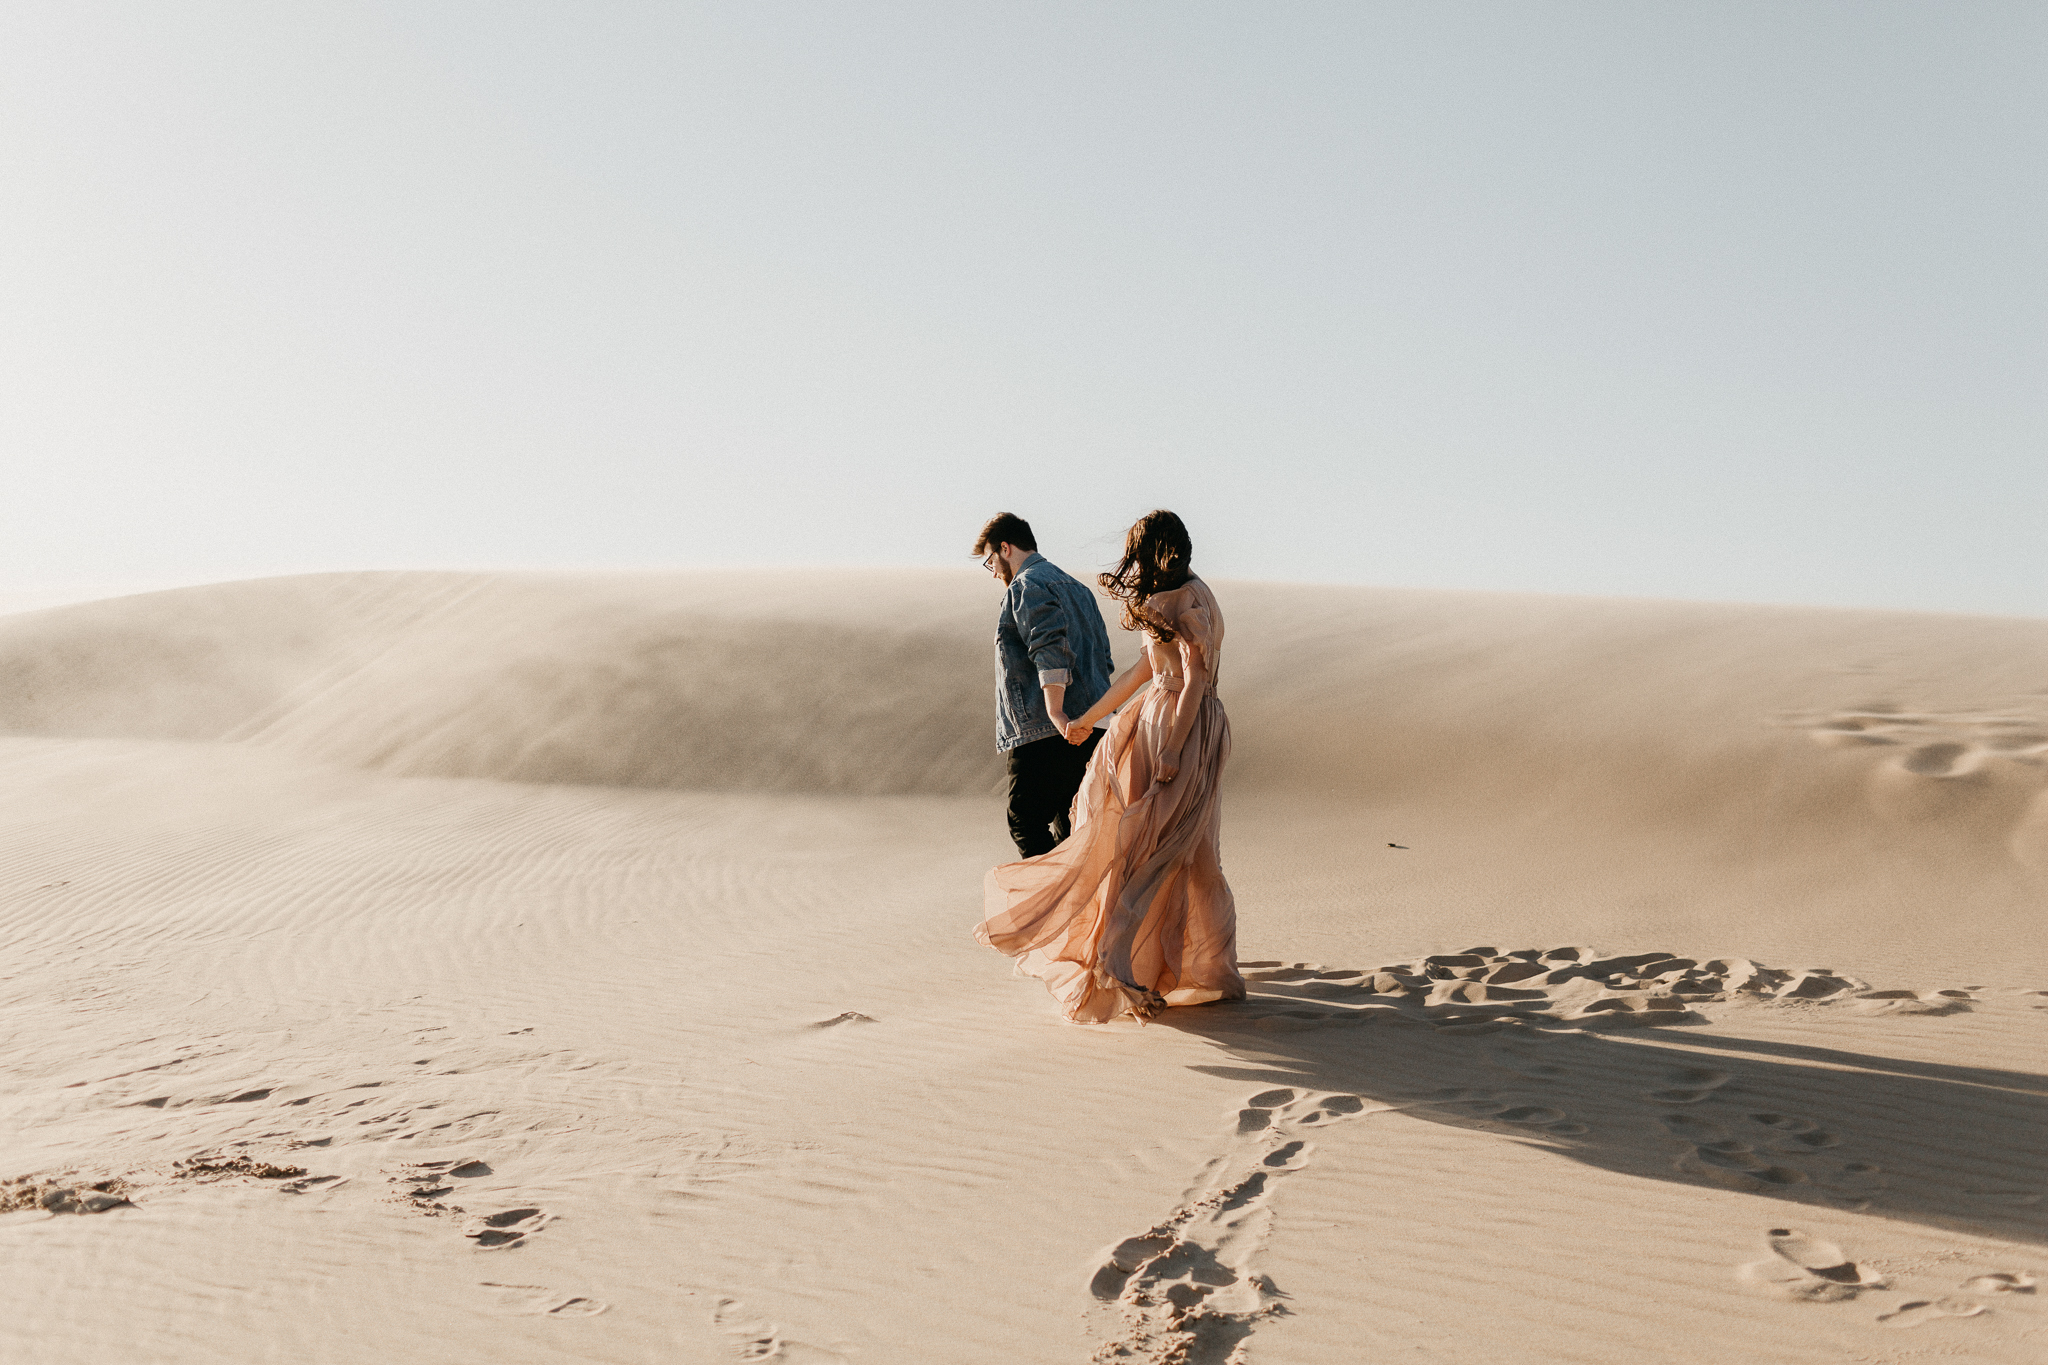 eastlyn-bright-silver-lake-sand-dunes-michigan-wedding-engagement-photographer-23.jpg